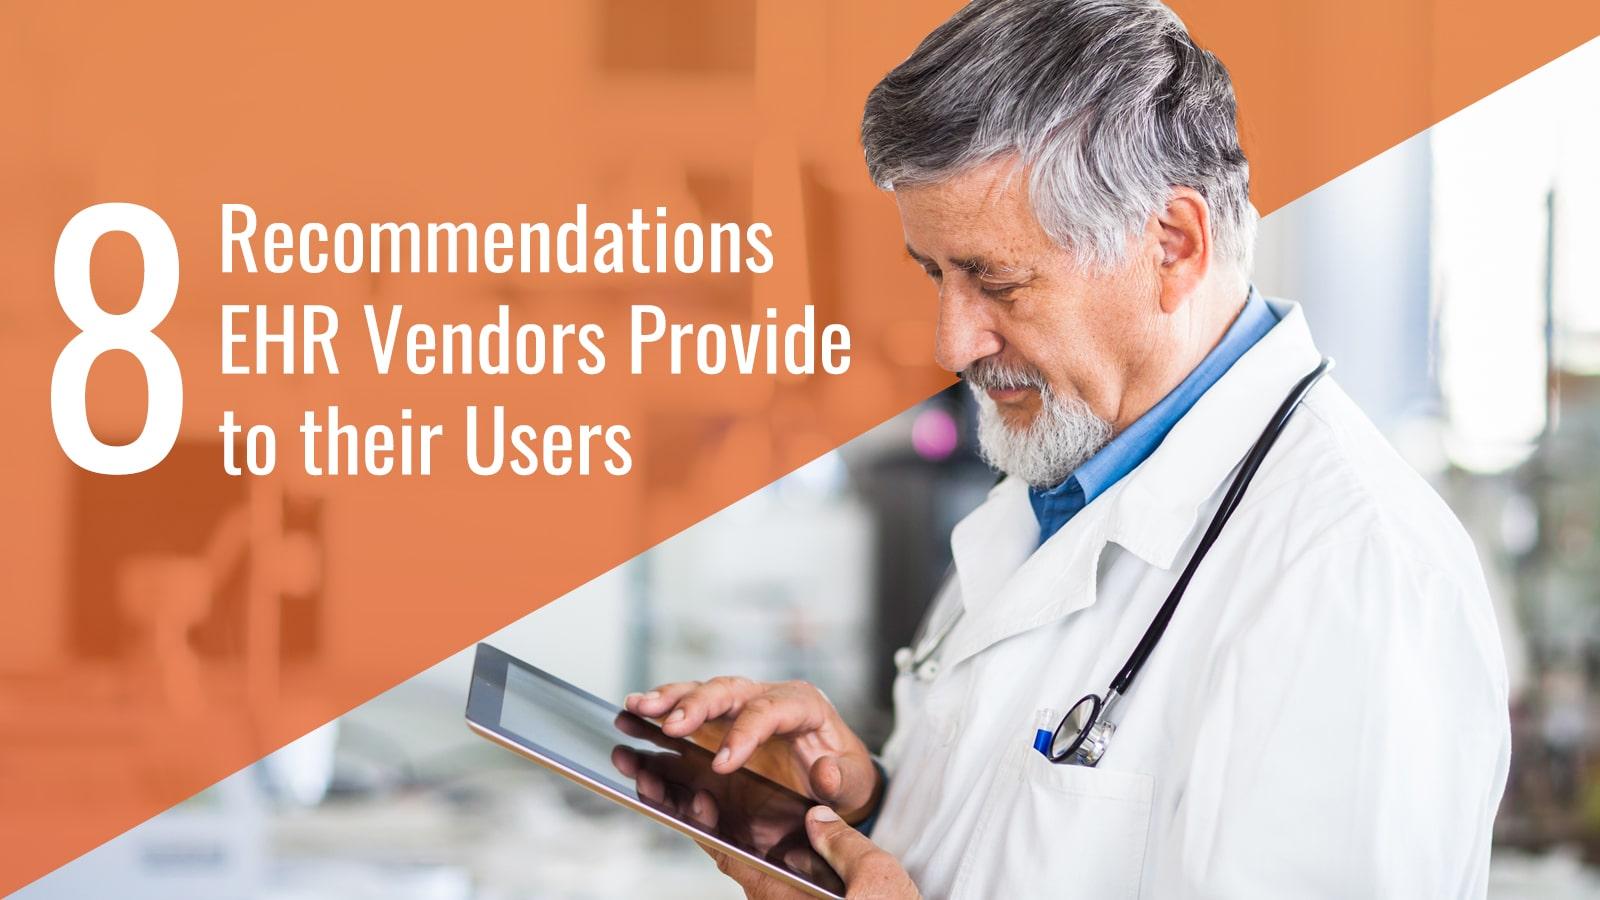 iPatientCare Blog - Recommendations EHR Vendors Provide